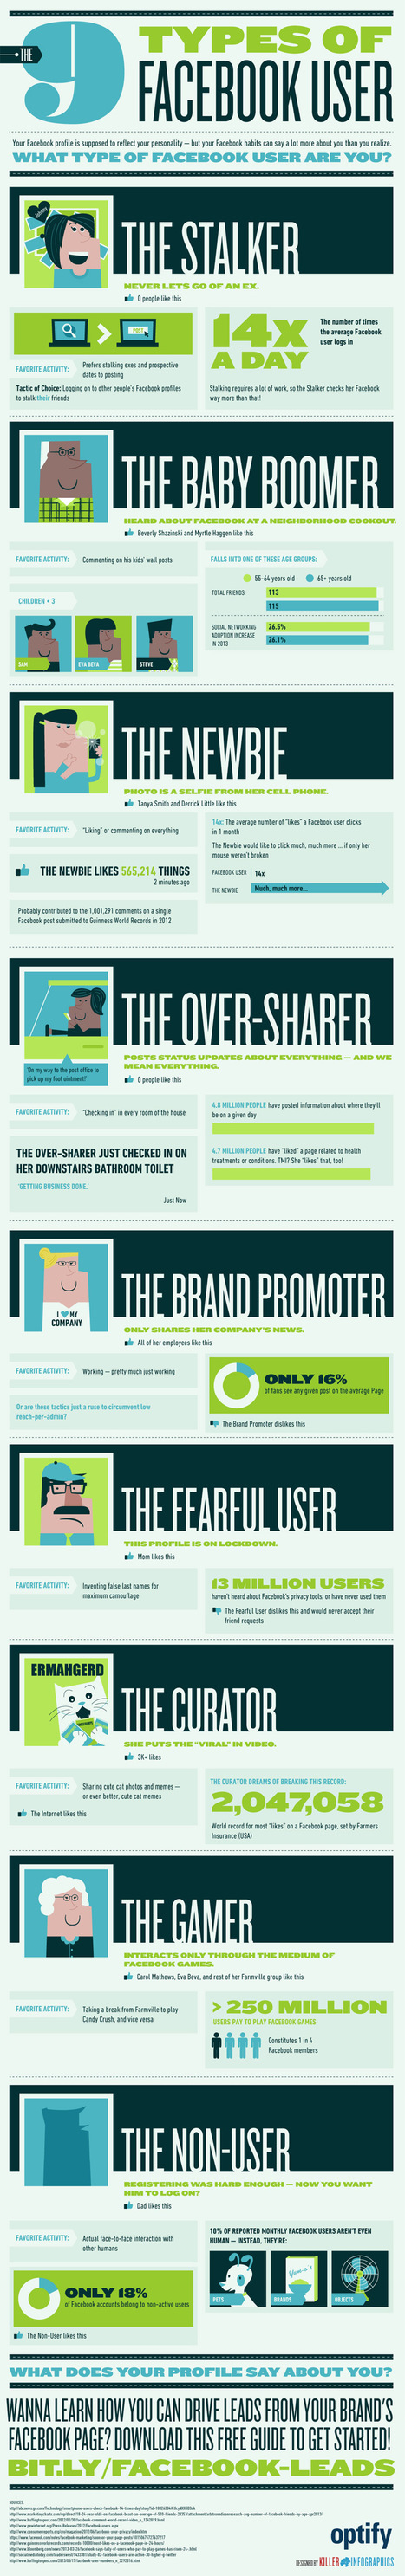 The 9 Types of Facebook User, what type are you? – an infographic /@BerriePelser | Blogging & Social Media | Scoop.it